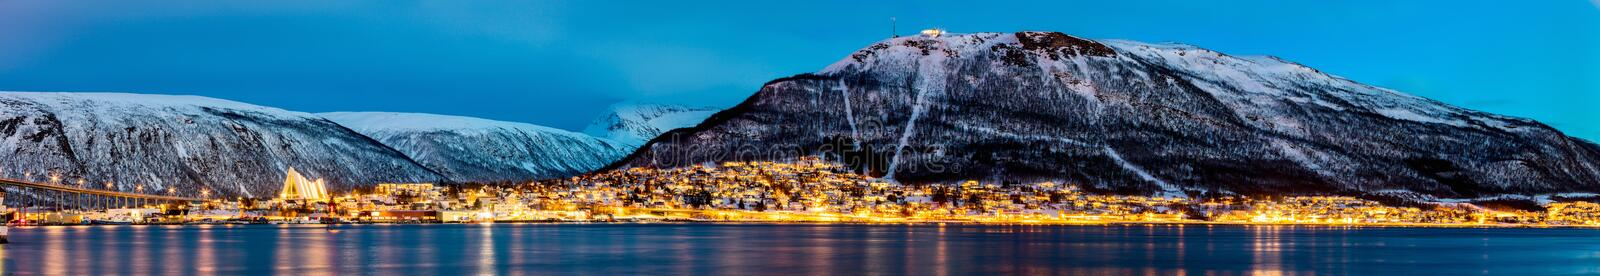 Tromso in Northern Norway stock images